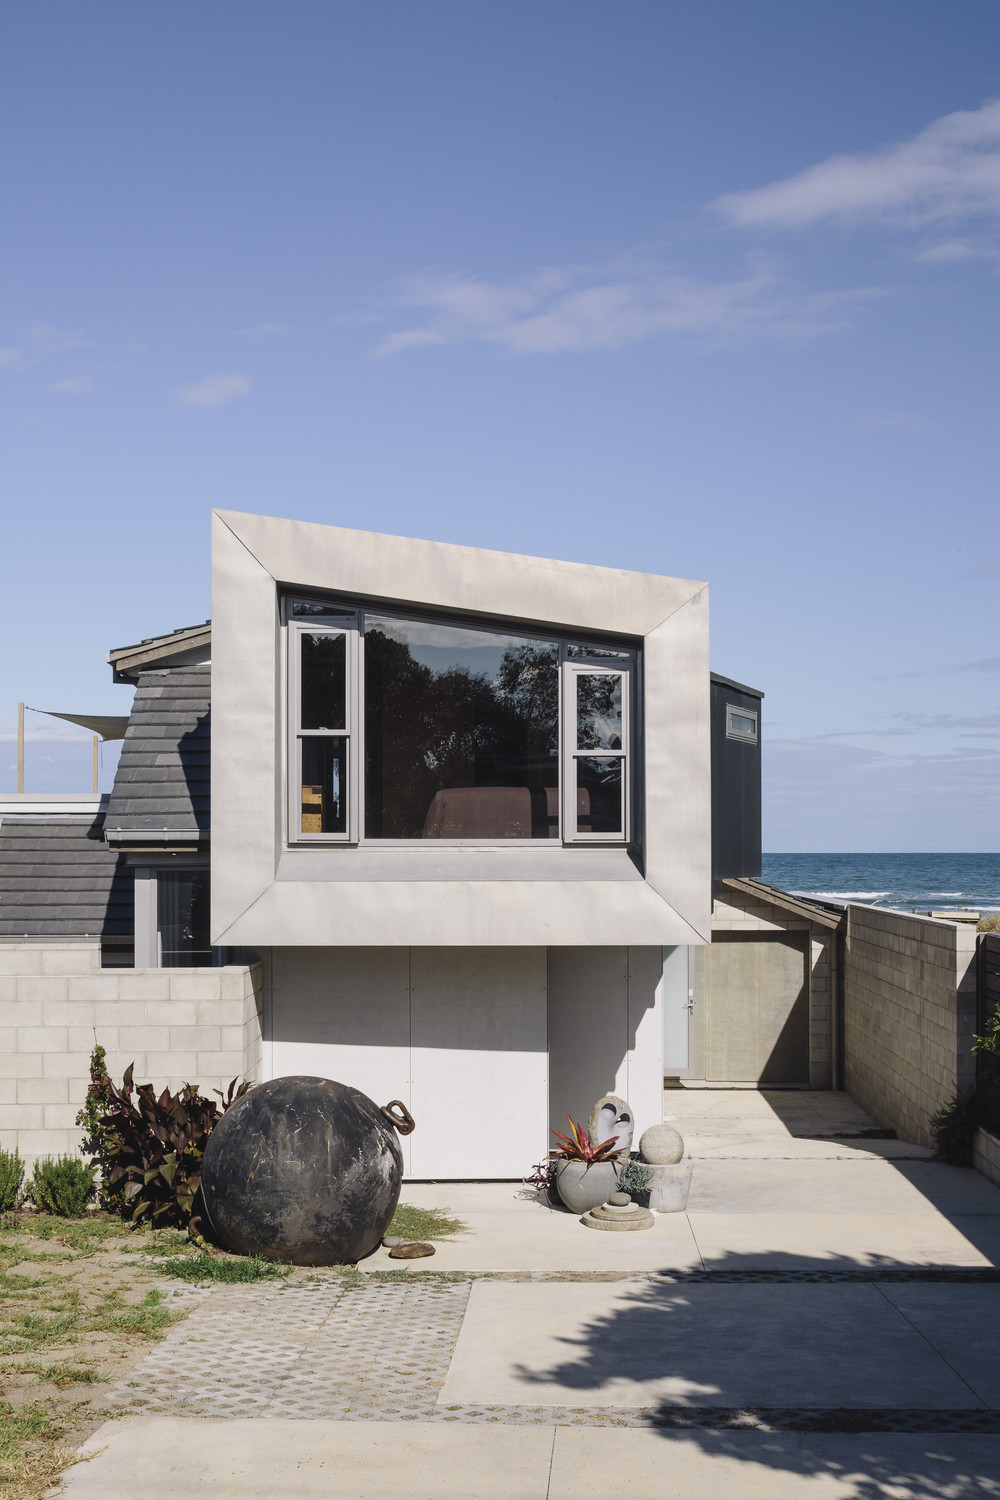 Coromandel Beach House by Strata Architects - New Zealand (3)